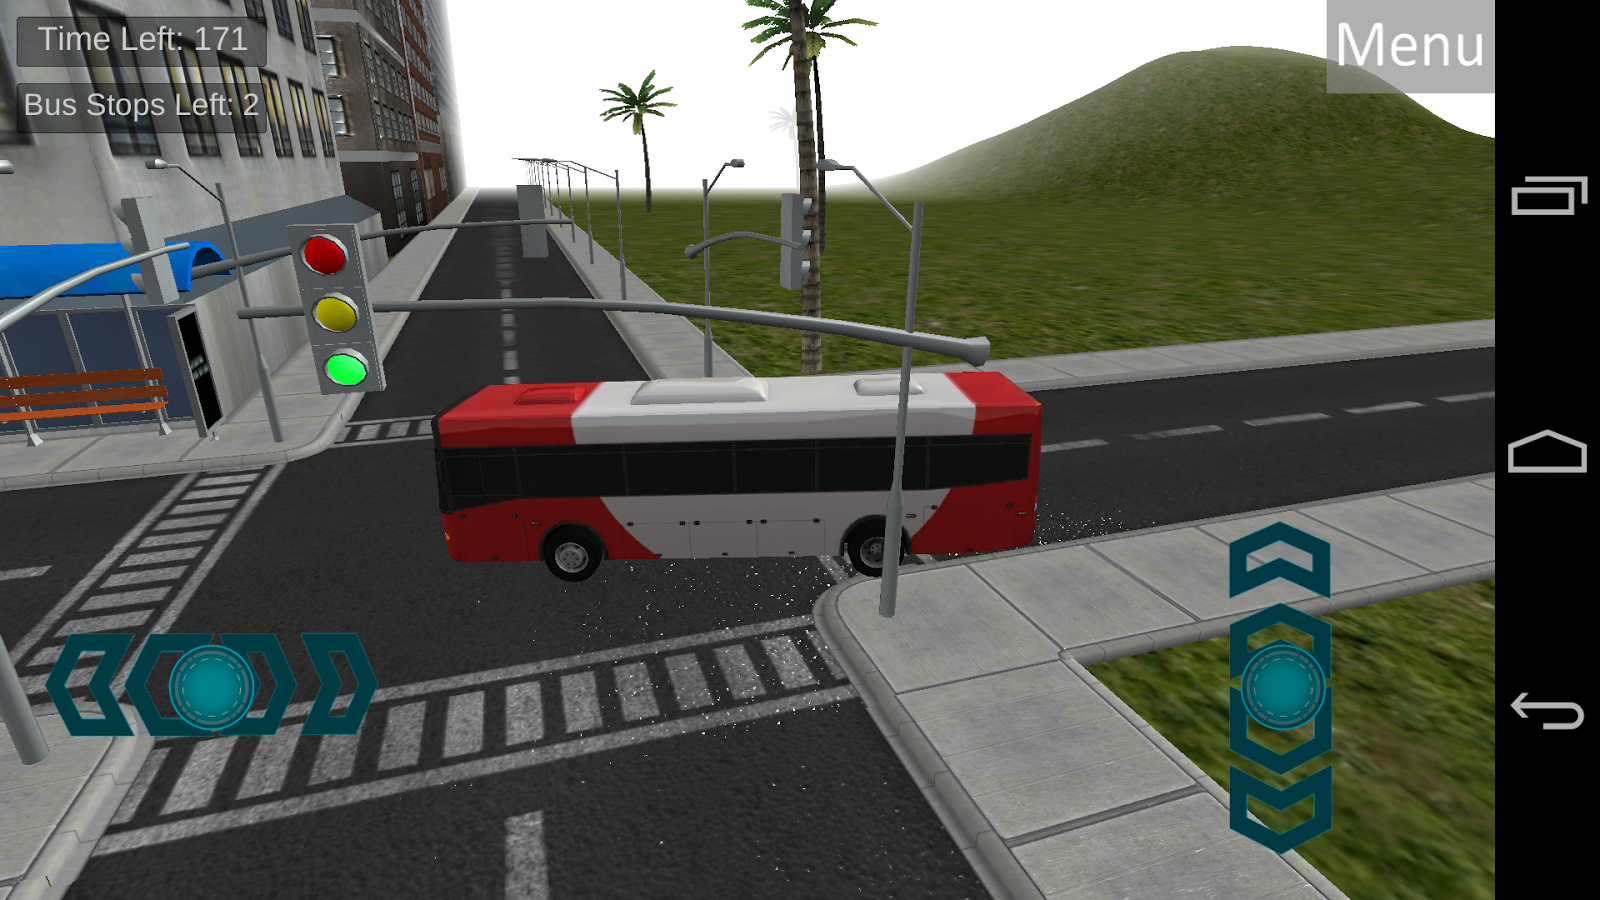 3d City Bus Simulator Free Download